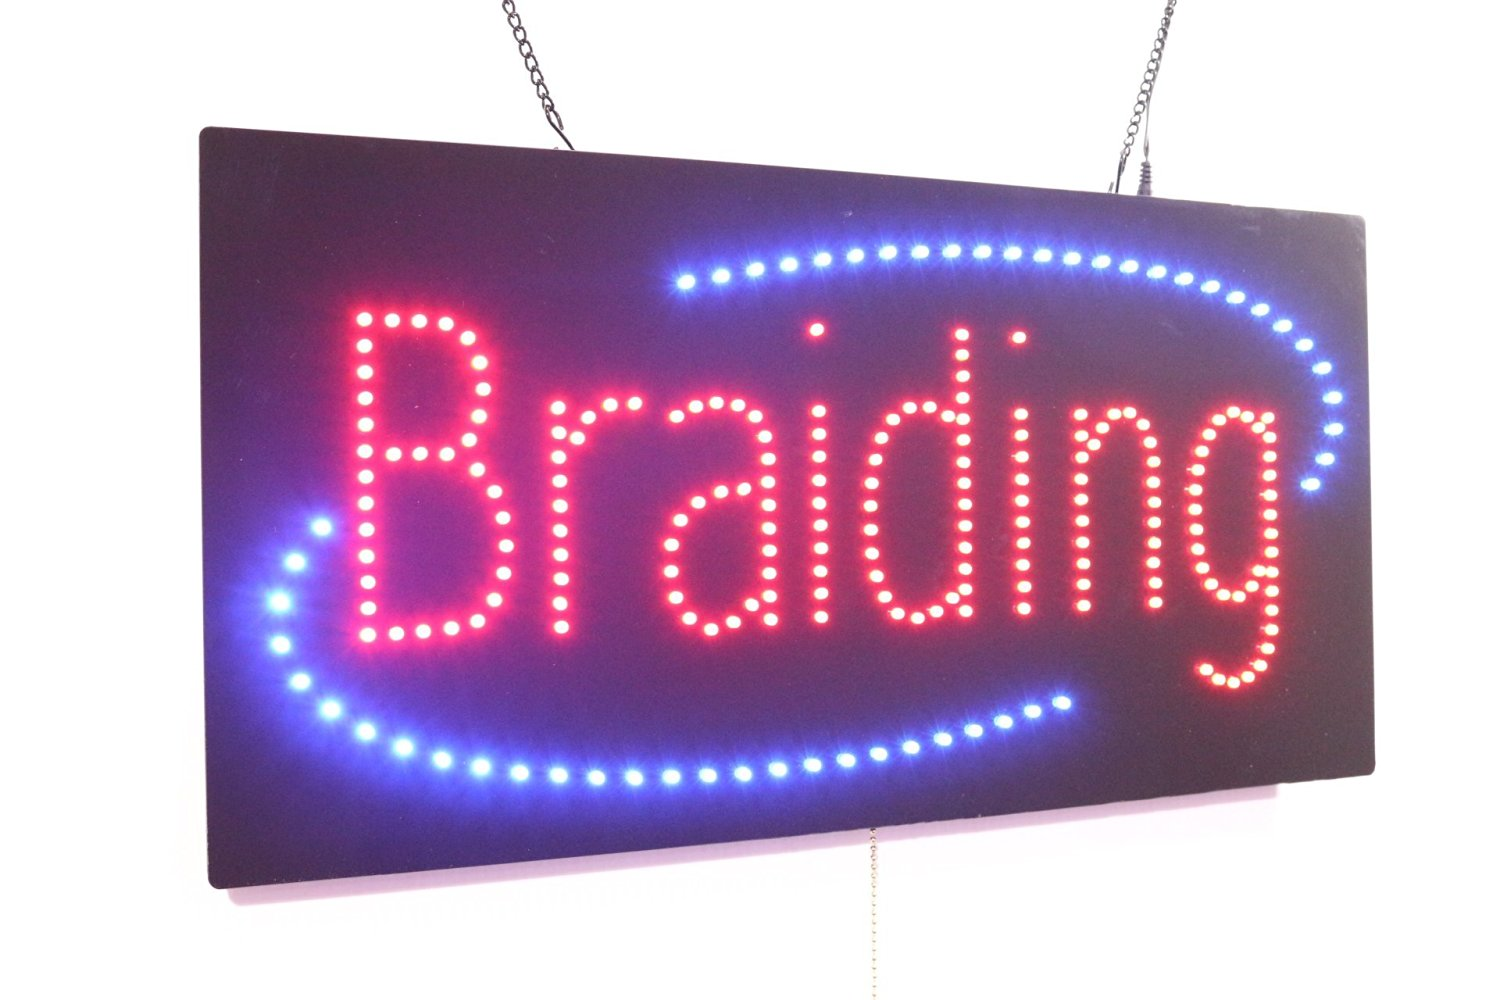 MOST VISIBLE ATTRACTIVE SUPER BRIGHT SUPER QUALITY LED NEON FLASHING OPEN SIGN